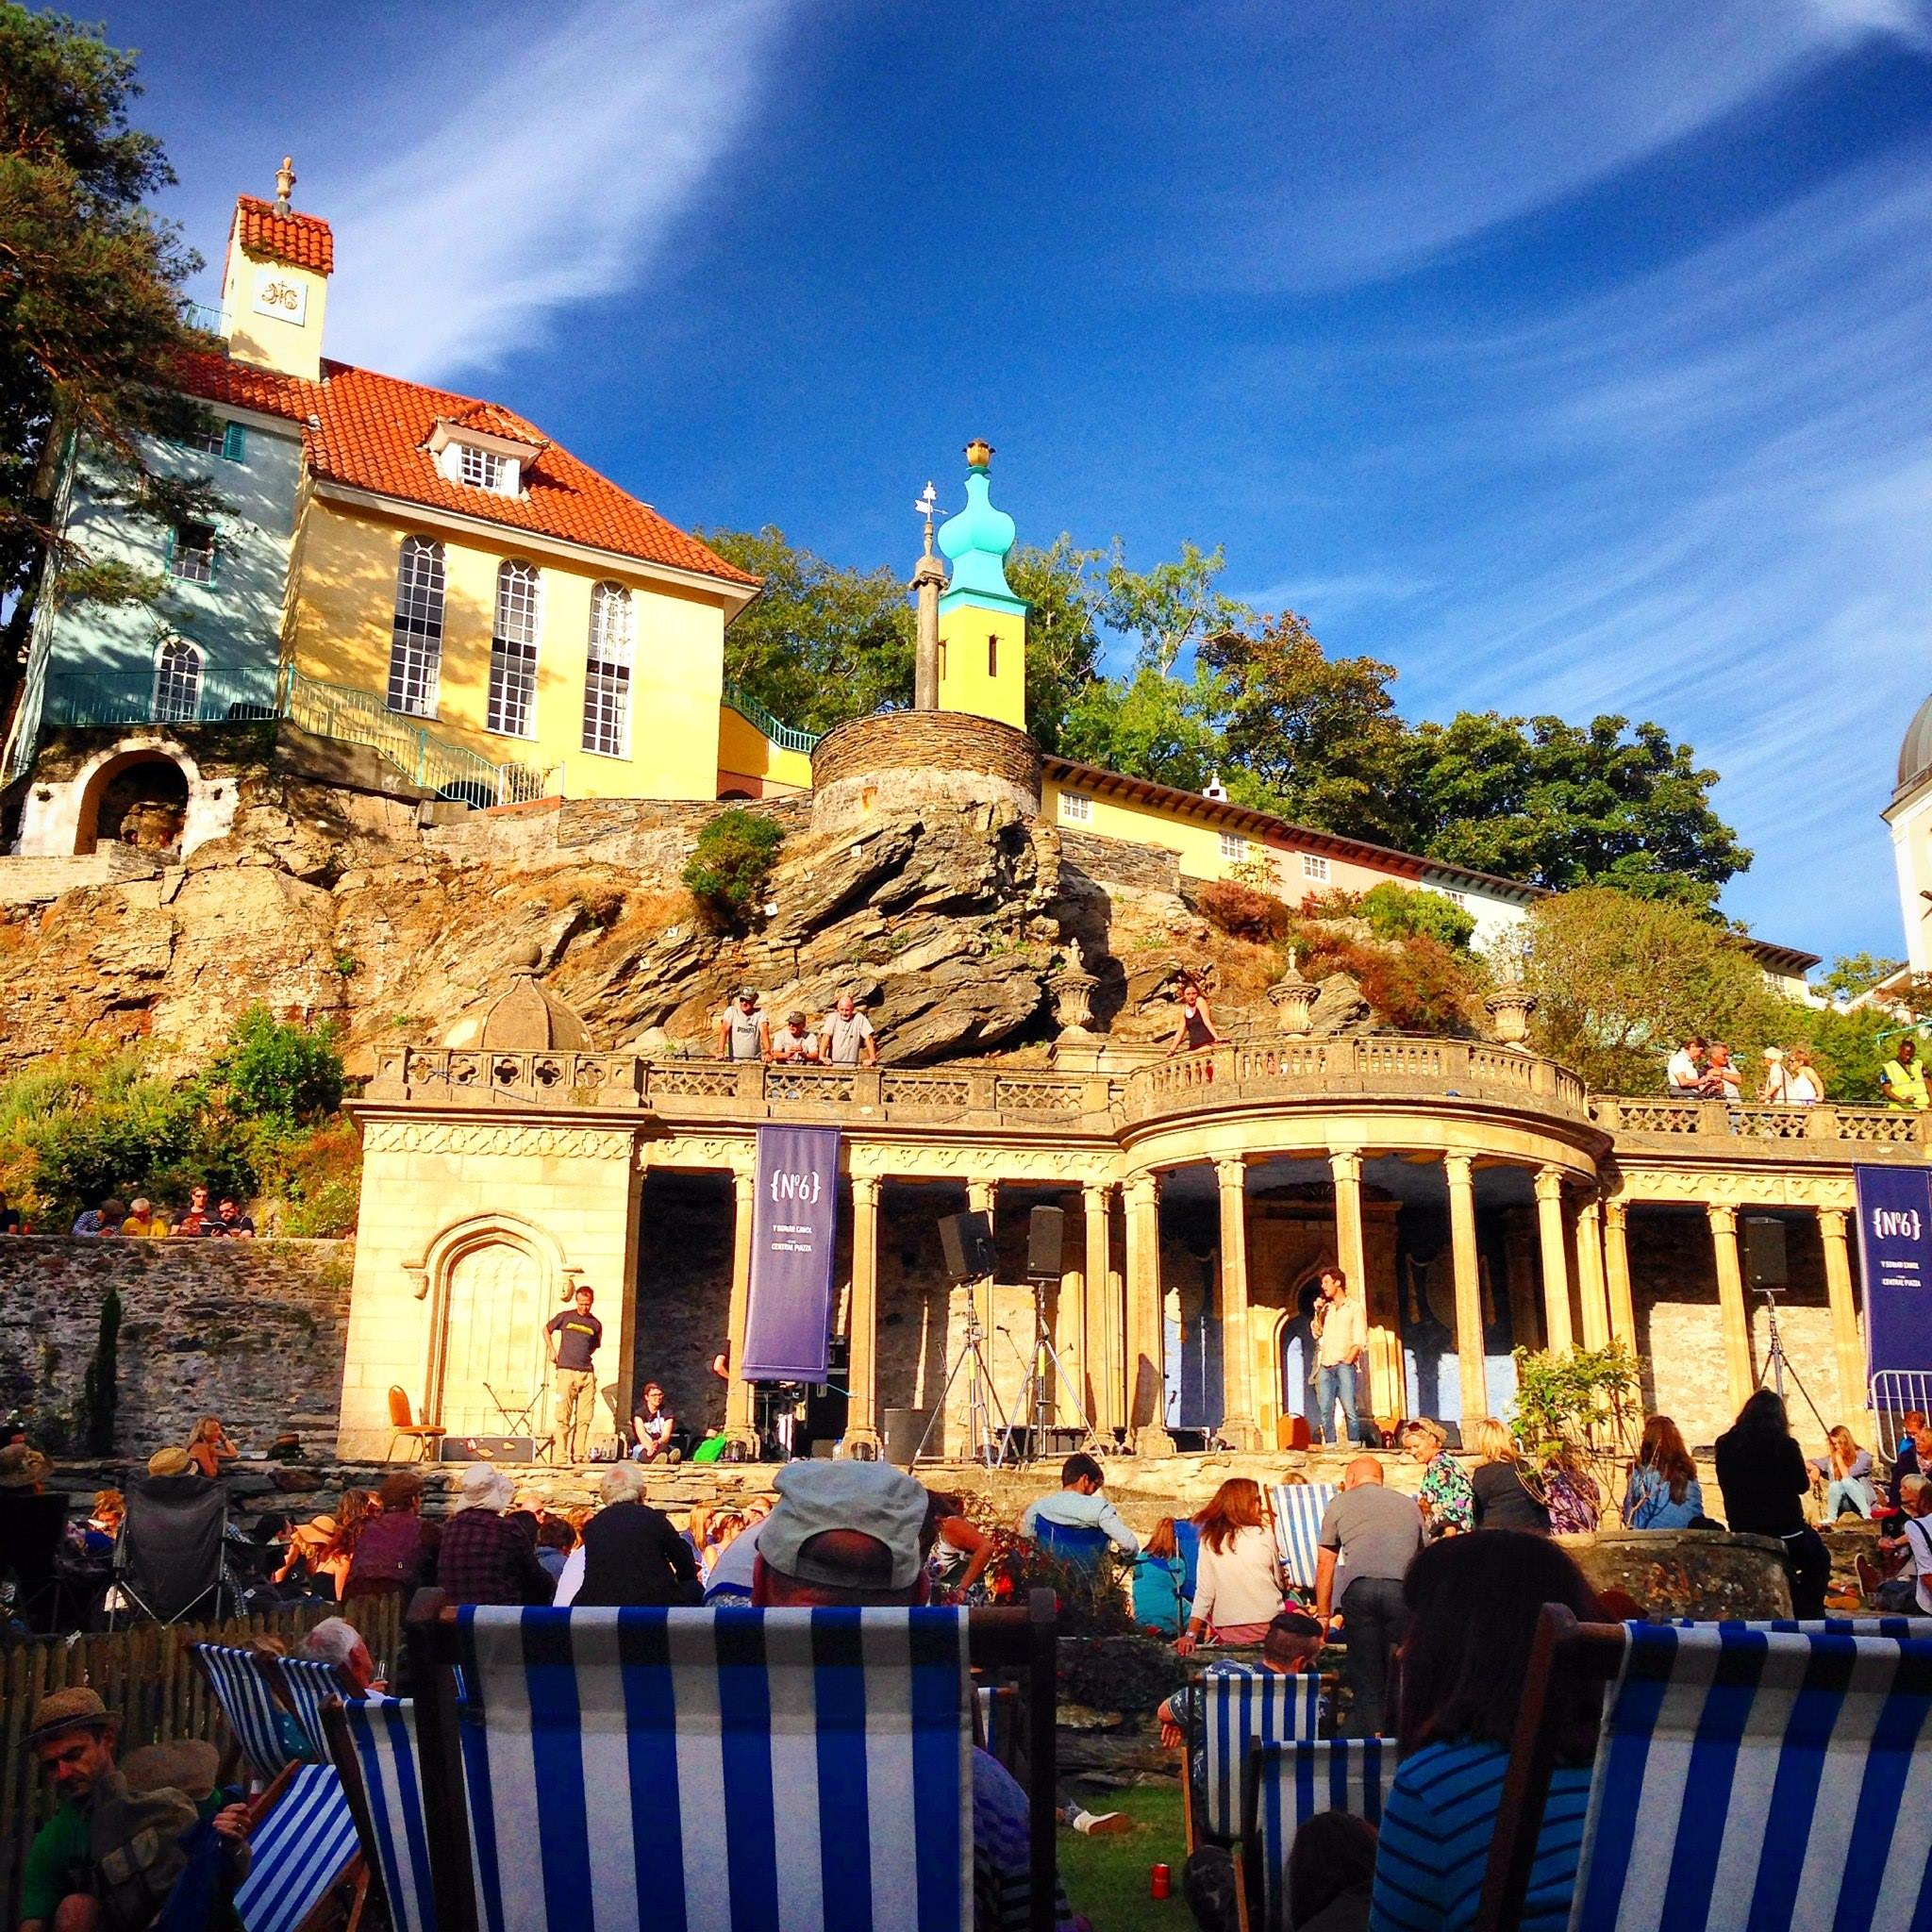 The Central Piazza, Portmeirion